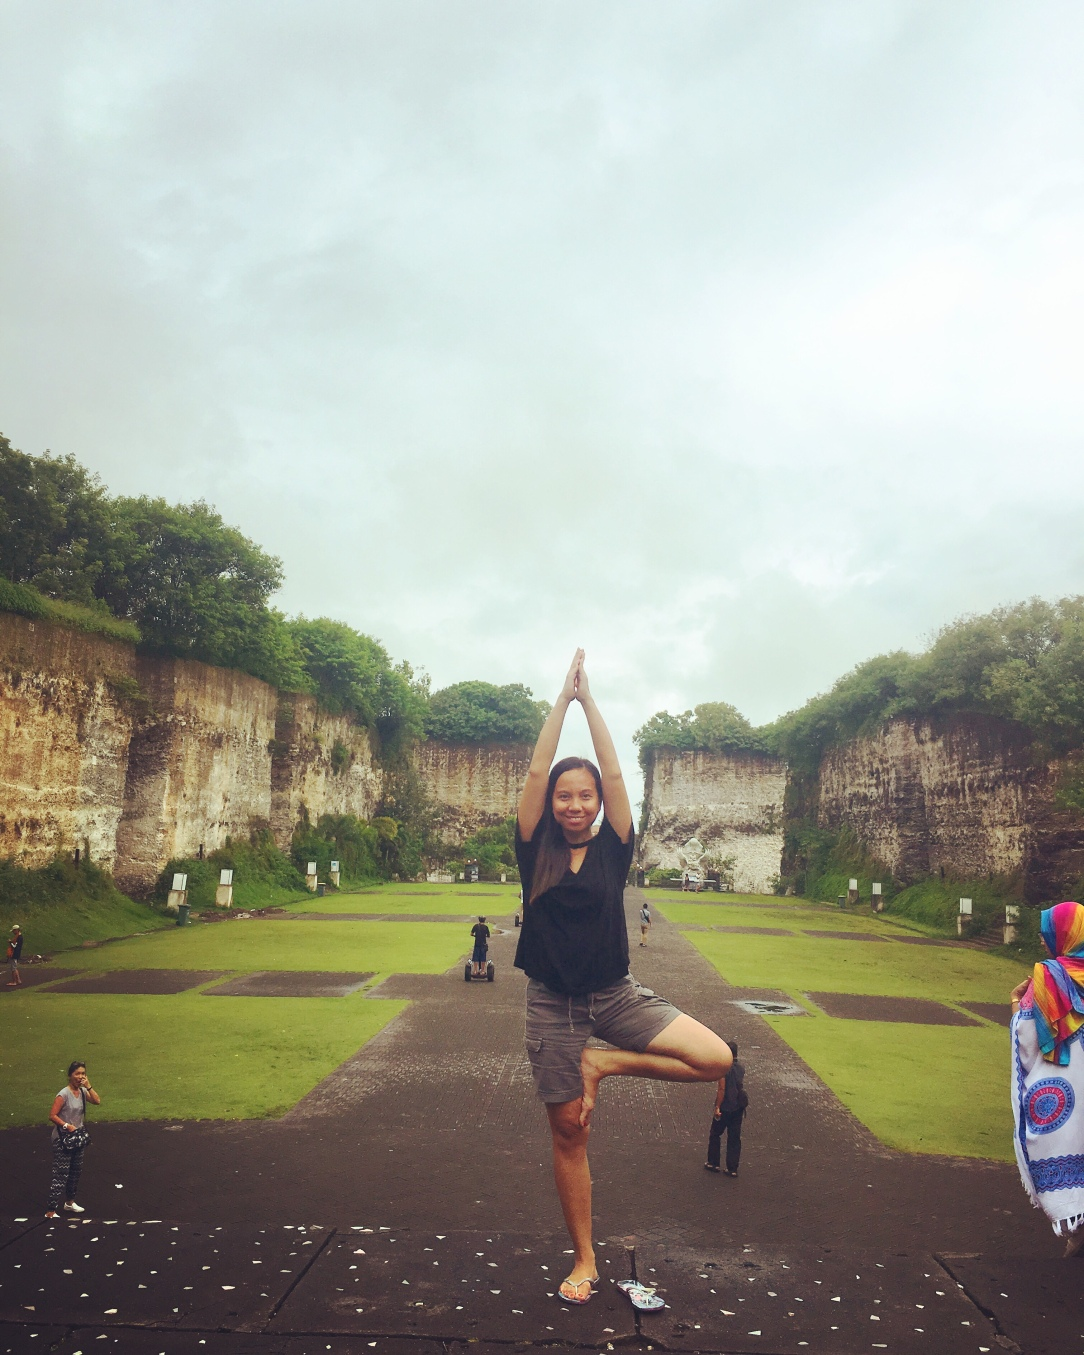 Garuda Wisnu Kencana travel tips